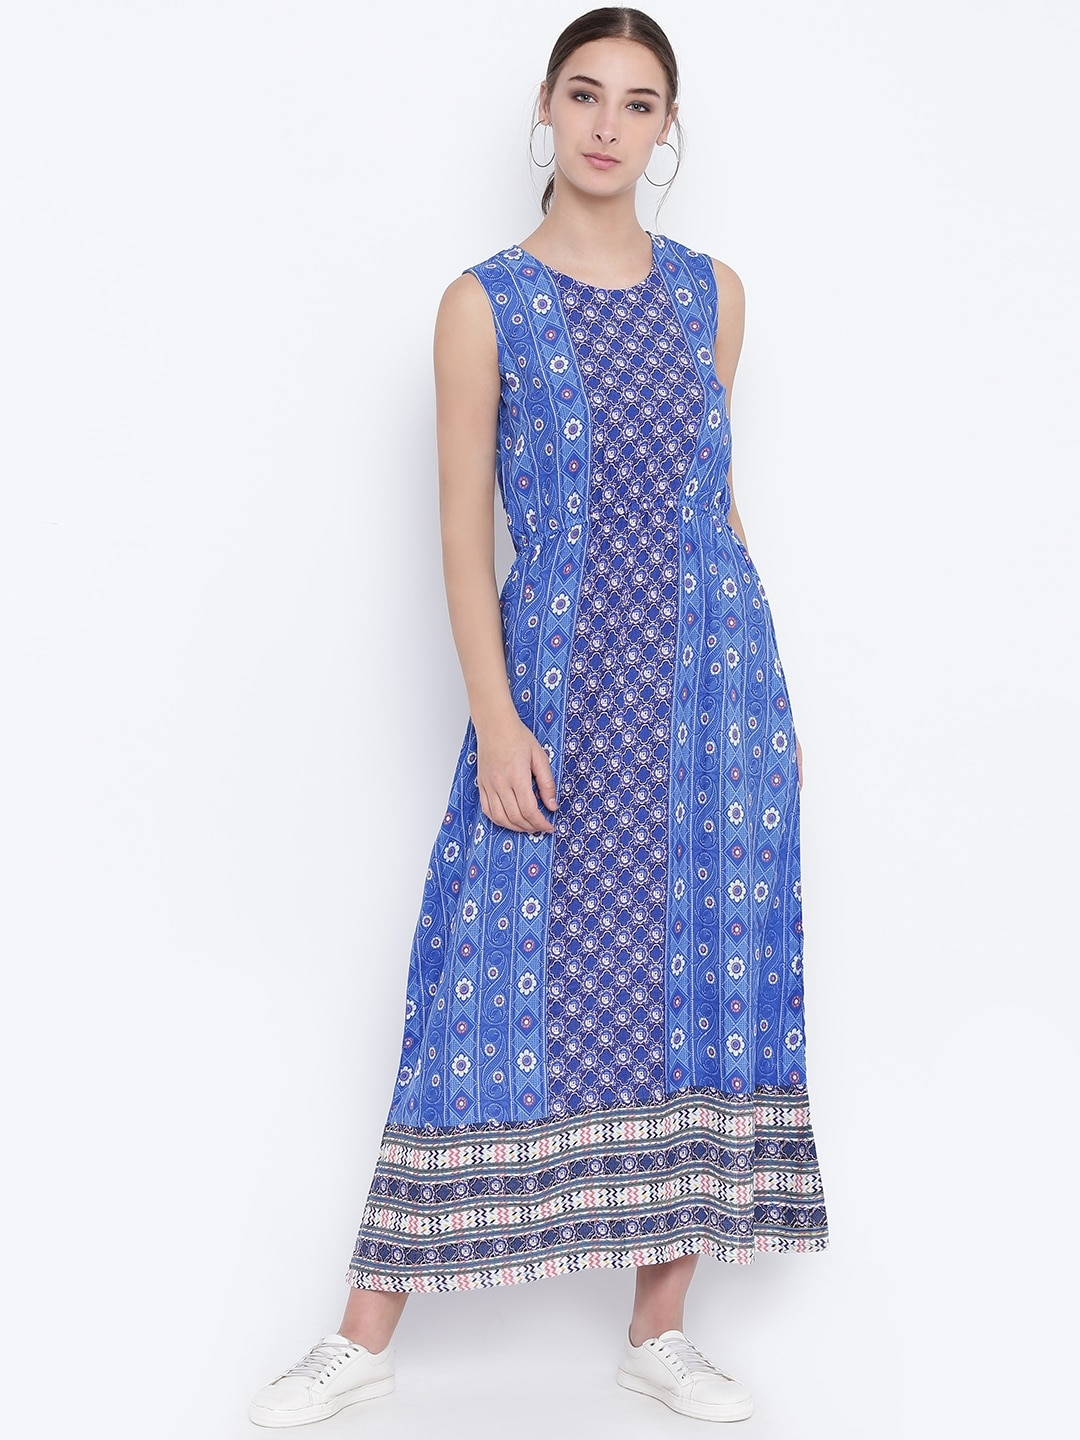 bd7dae2f68b780 Western Wear For Women - Buy Westernwear For Ladies Online - Myntra